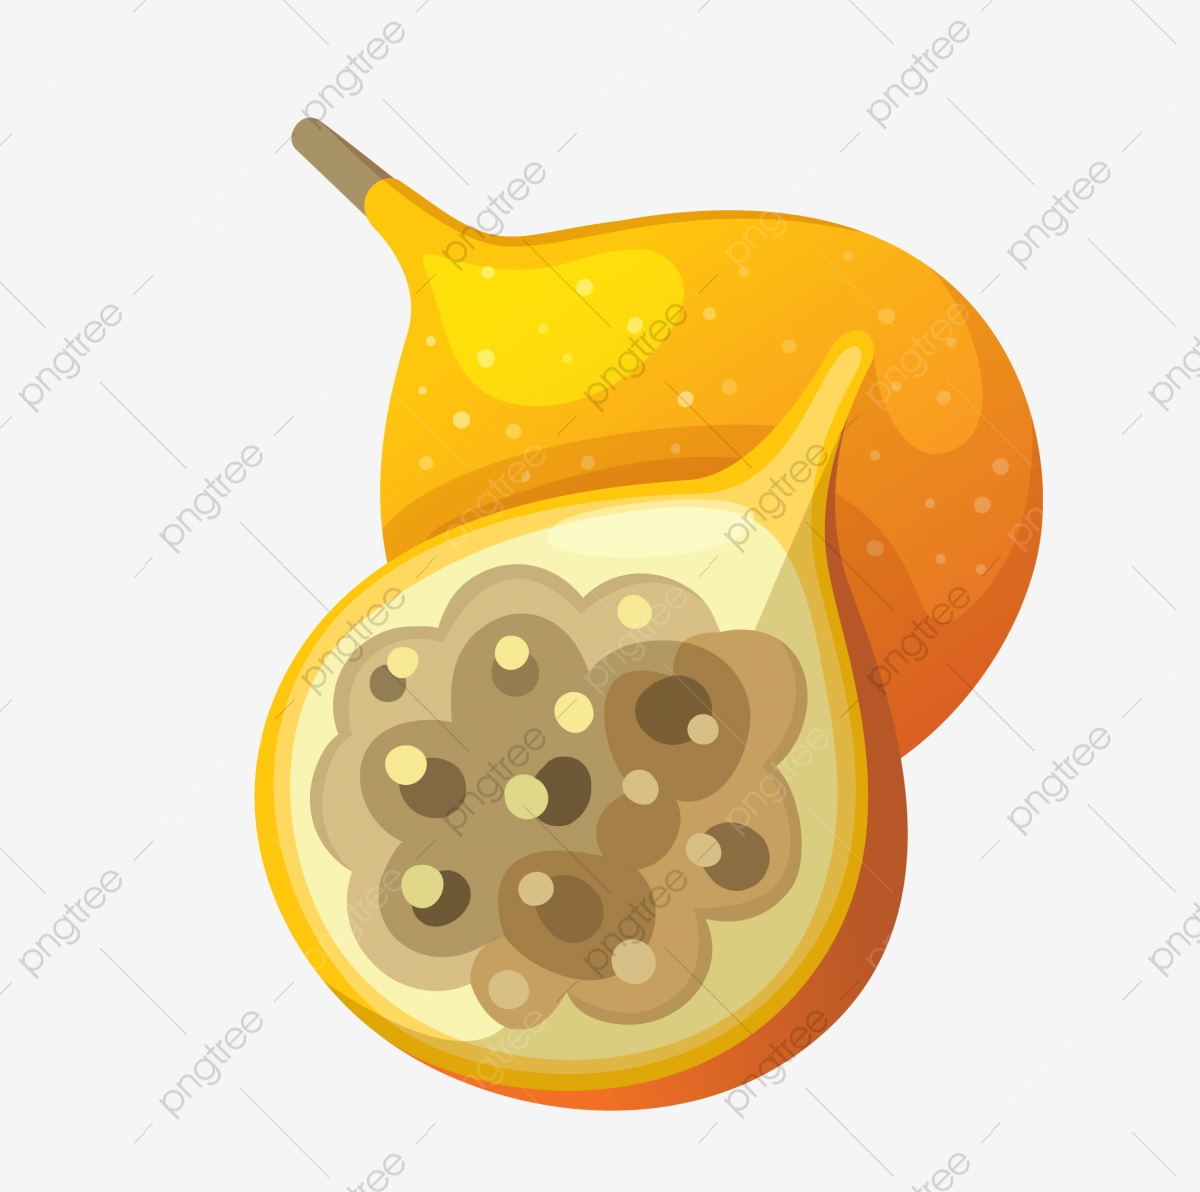 Fruit passion passionflower summer. Fruits clipart egg